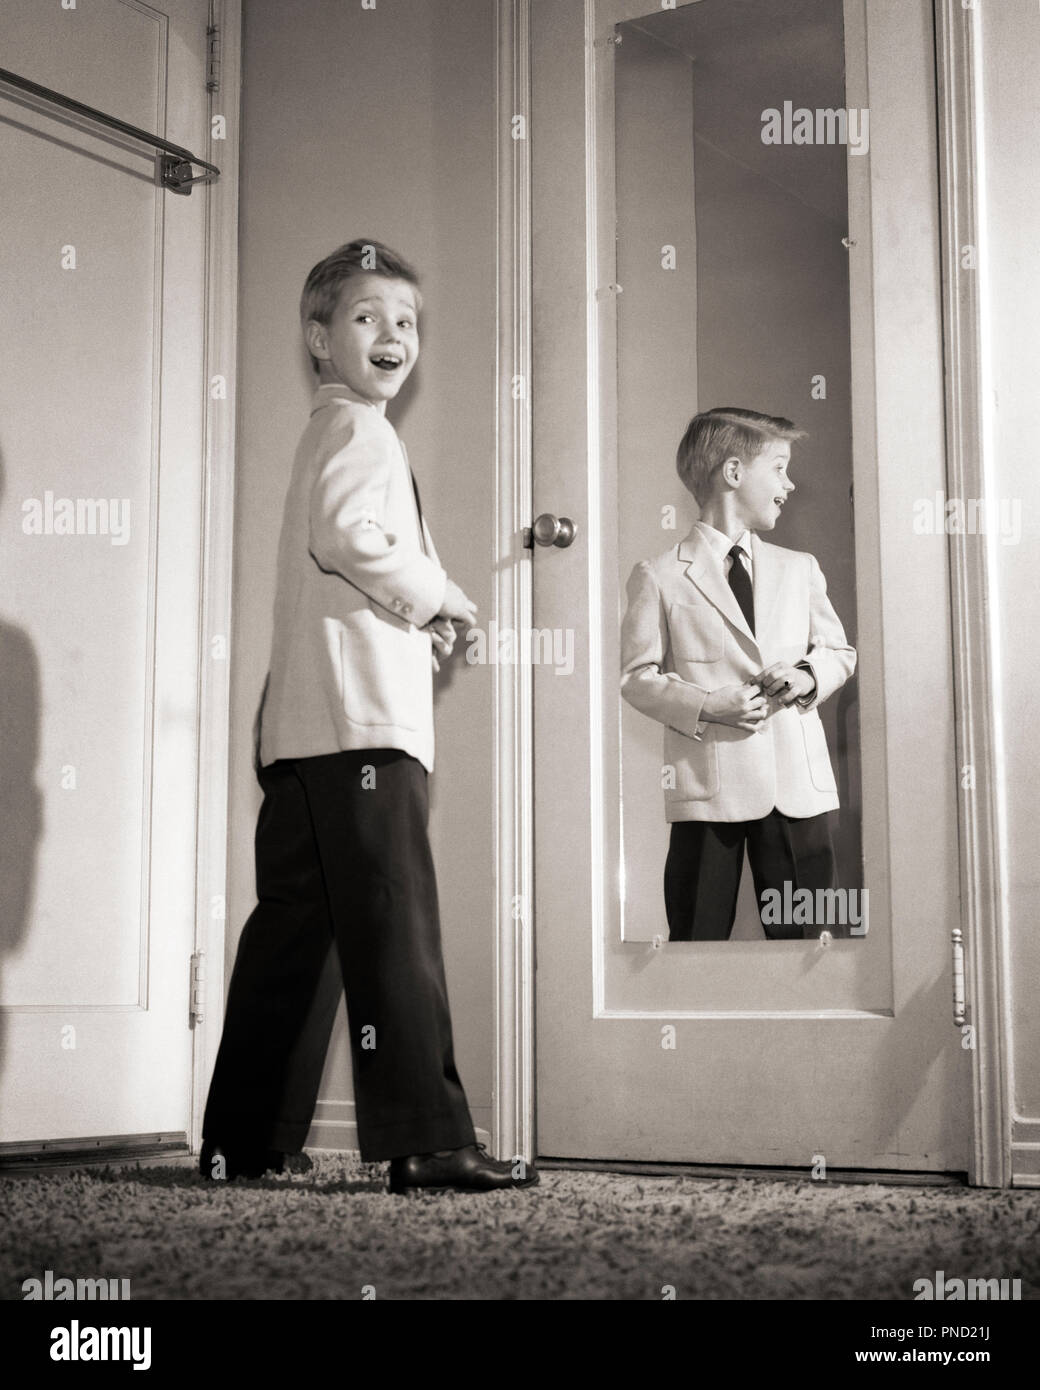 1950s SMILING PRE-TEEN BOY YOUNG MAN WEARING SPORTS JACKET AND TIE STANDING BEFORE MIRROR LOOKING AT CAMERA BACK OVER SHOULDER - j2457 DEB001 HARS MALES CONFIDENCE B&W EYE CONTACT SUCCESS VISION SUIT AND TIE BEFORE HAPPINESS CHEERFUL STYLES AND YOUNG MAN EXCITEMENT LOOKING BACK PRIDE SMILES SPORTS JACKET STEPPING OUT JOYFUL STYLISH DEB001 DRESSED UP FASHIONS JUVENILES PRE-TEEN PRE-TEEN BOY BLACK AND WHITE CAUCASIAN ETHNICITY OLD FASHIONED - Stock Image